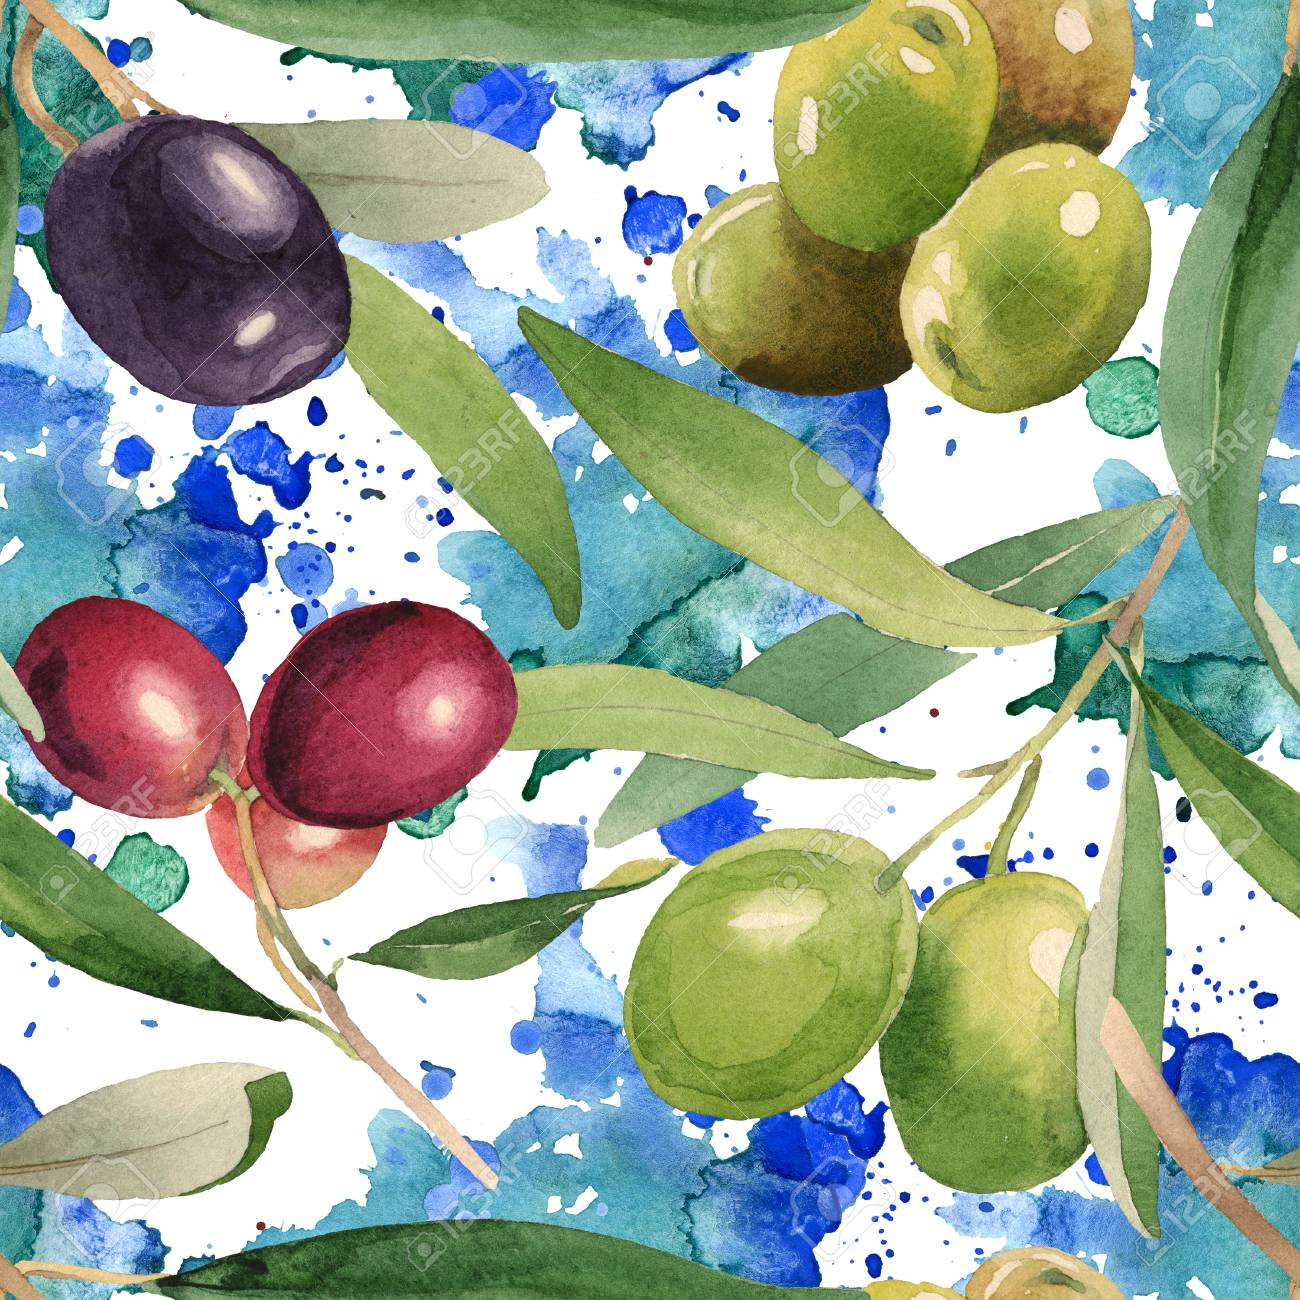 Fresh Olives Healthy Food Watercolor Background Illustration Set Watercolour Drawing Fashion Aquarelle Isolated Seamless Background Pattern Fabric